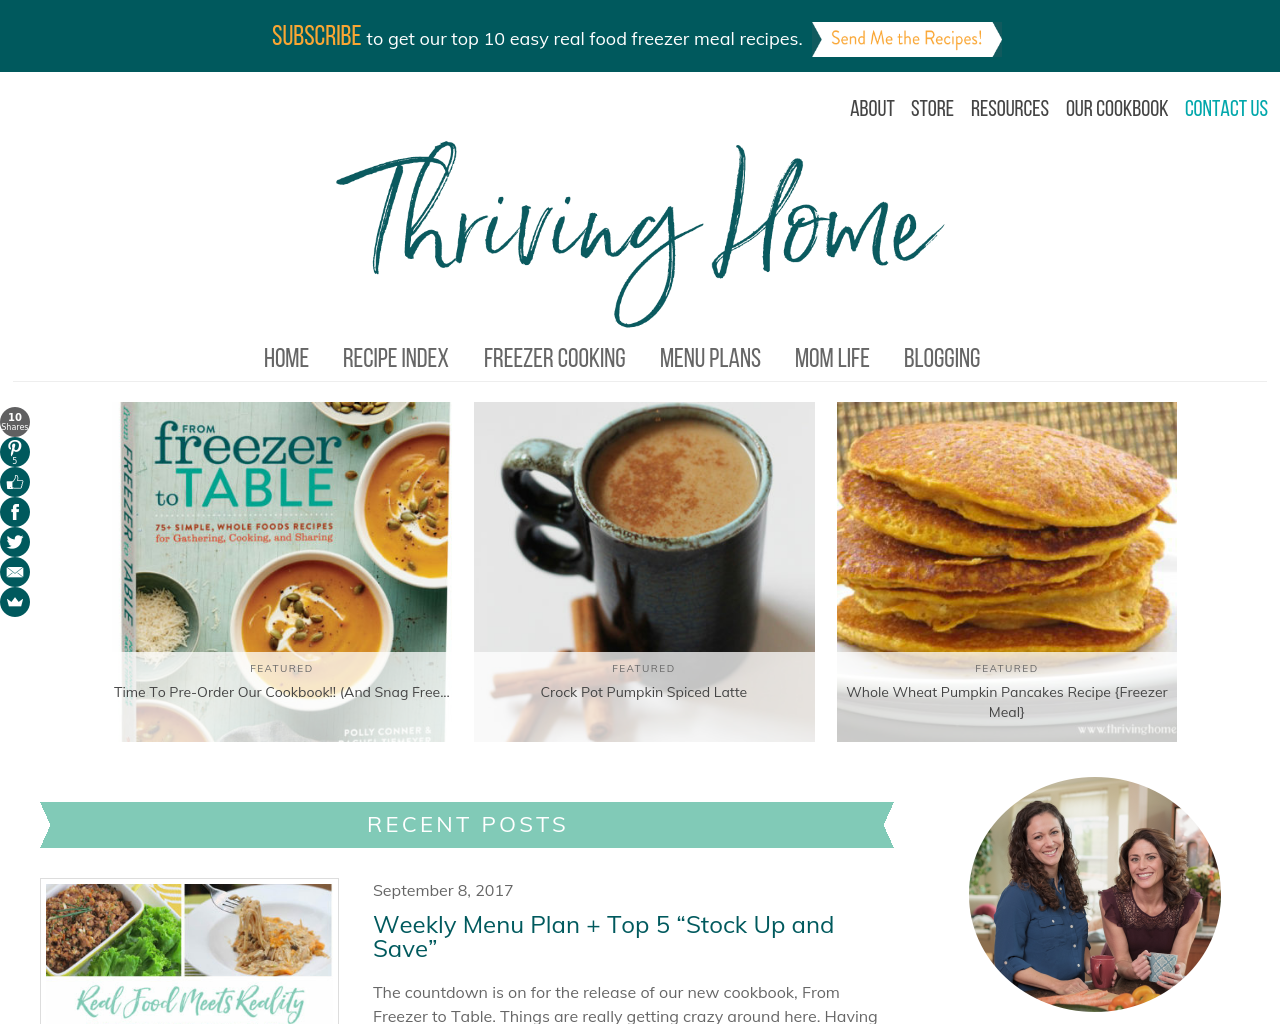 Thriving-home-Advertising-Reviews-Pricing